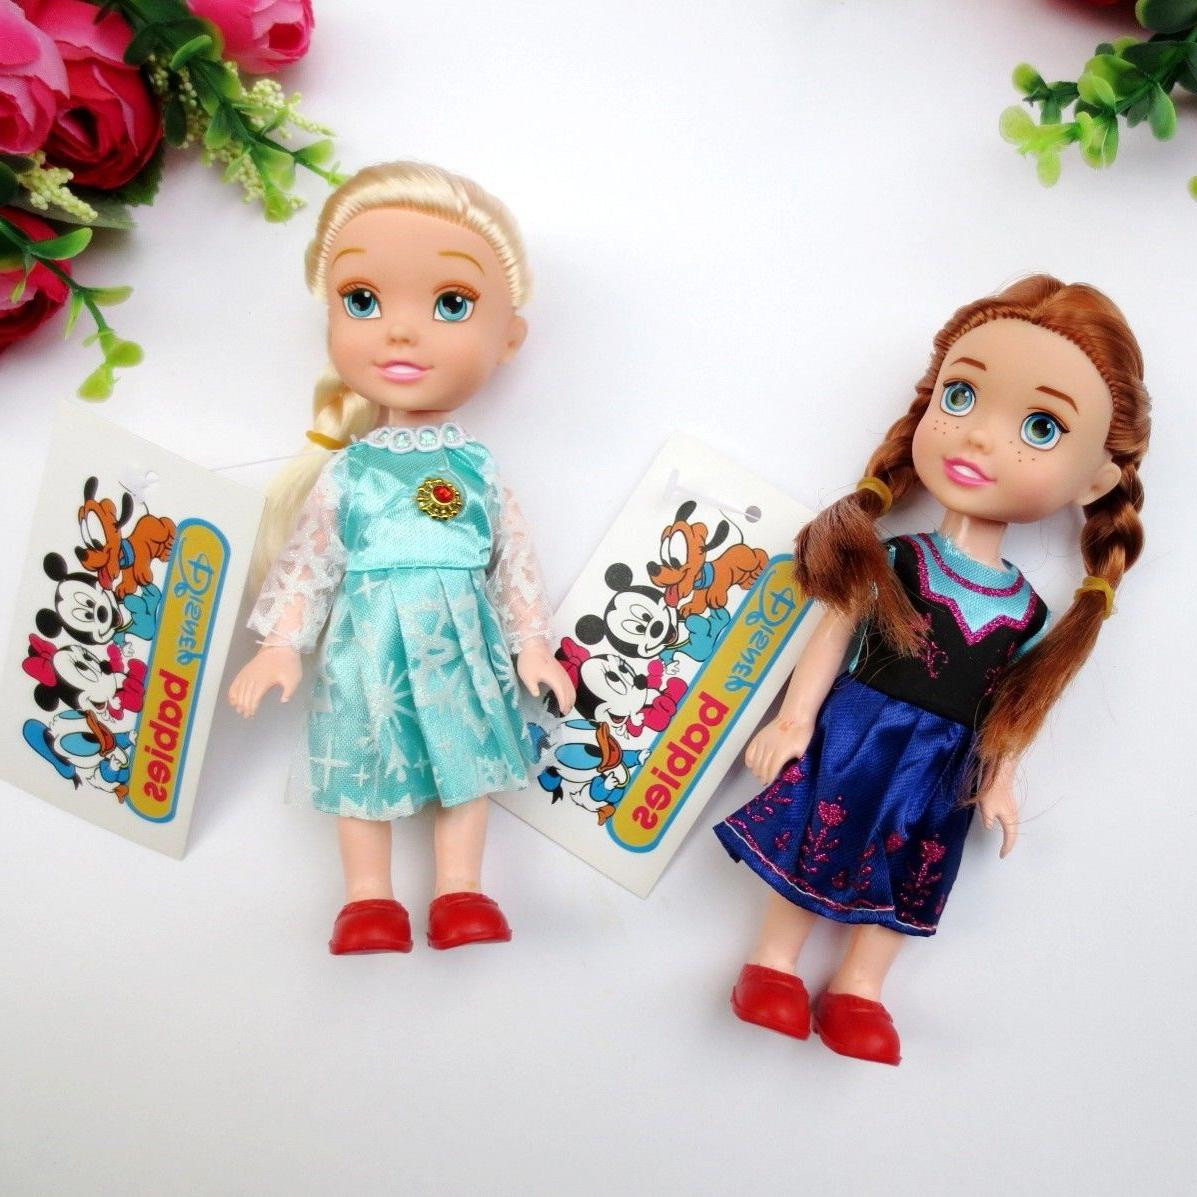 16 cm Children Baby Toddlers Kids Anna & Elsa Dolls Toy